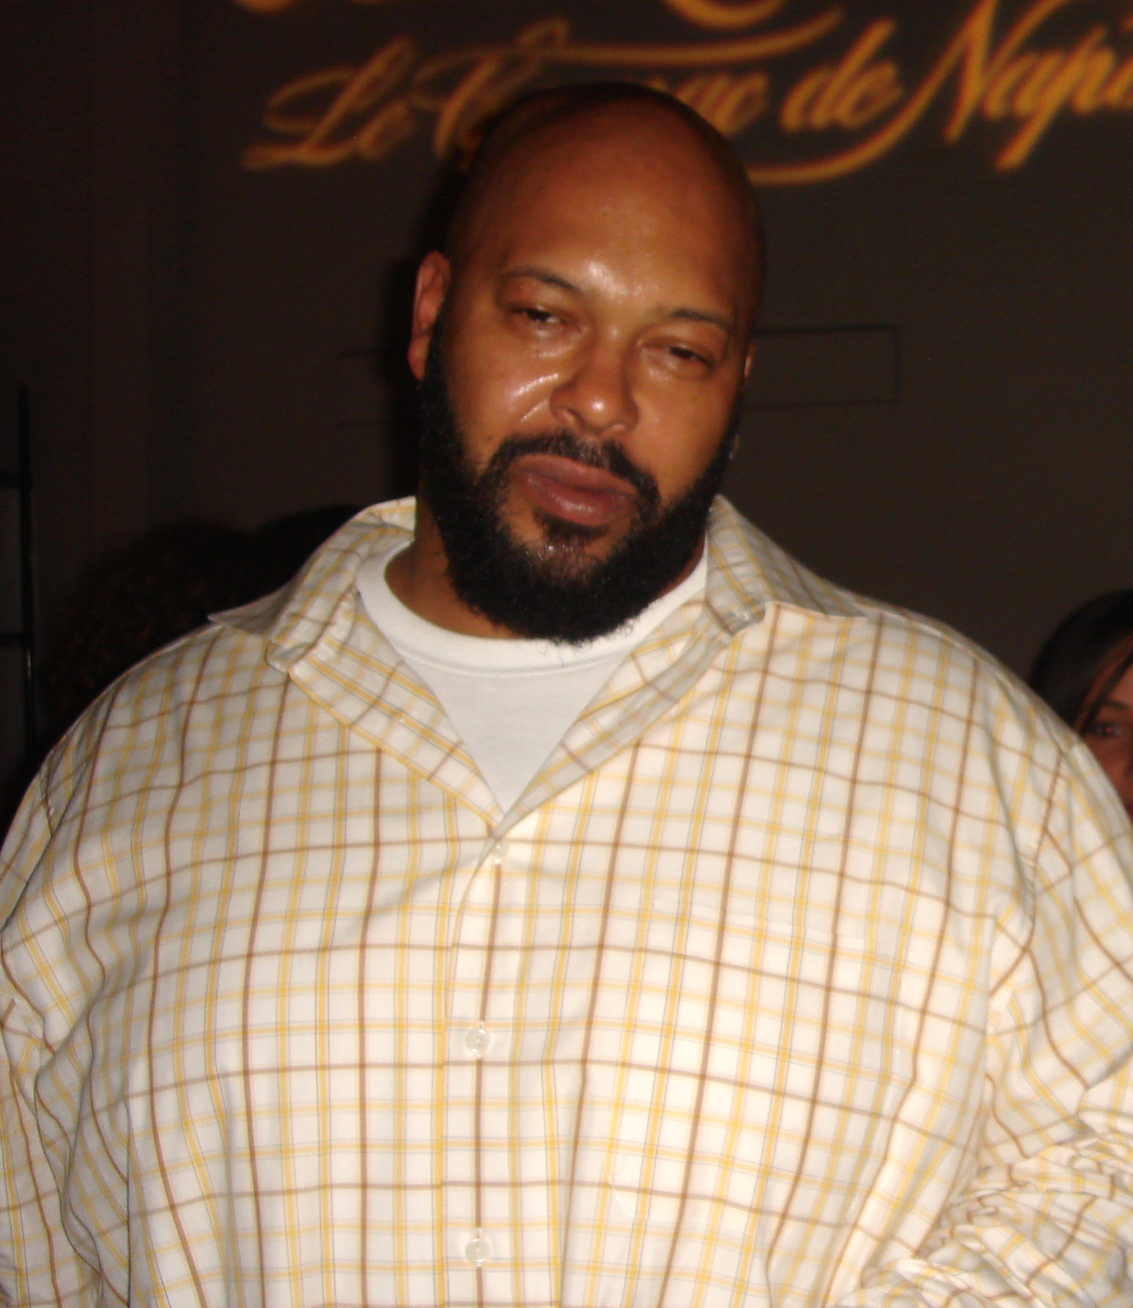 Suge Knight sentenced to 28 years in prison for 2015 hit-and-run death